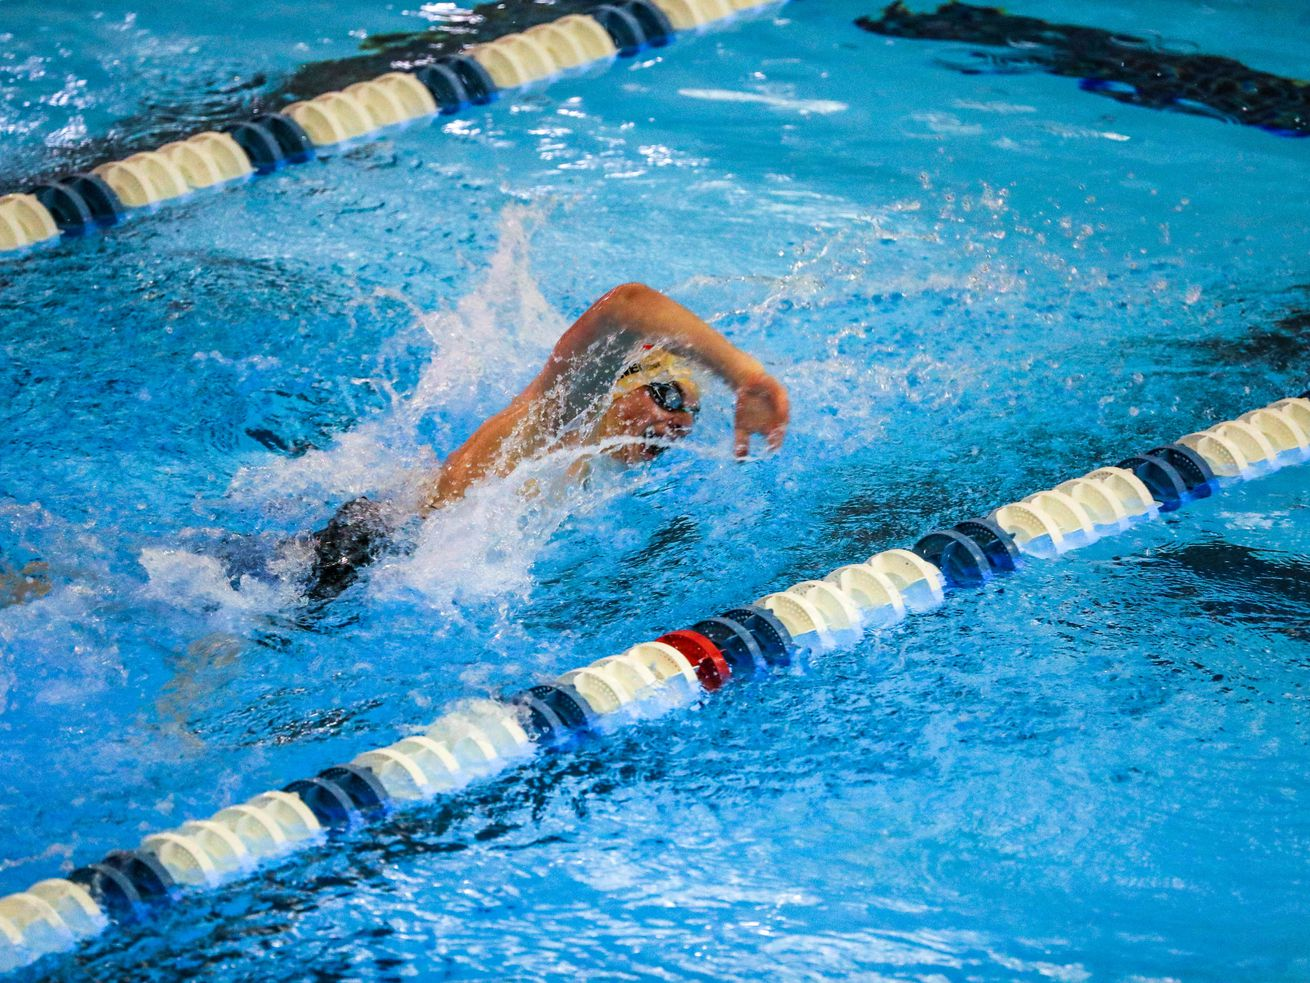 Judge's Buddy Yanelli swims his way to a win in heat 2 of the 200 yard IM at the 3A men's swimming state meet at the South Davis Recreation Center in Bountiful on Saturday, Feb. 13, 2021.